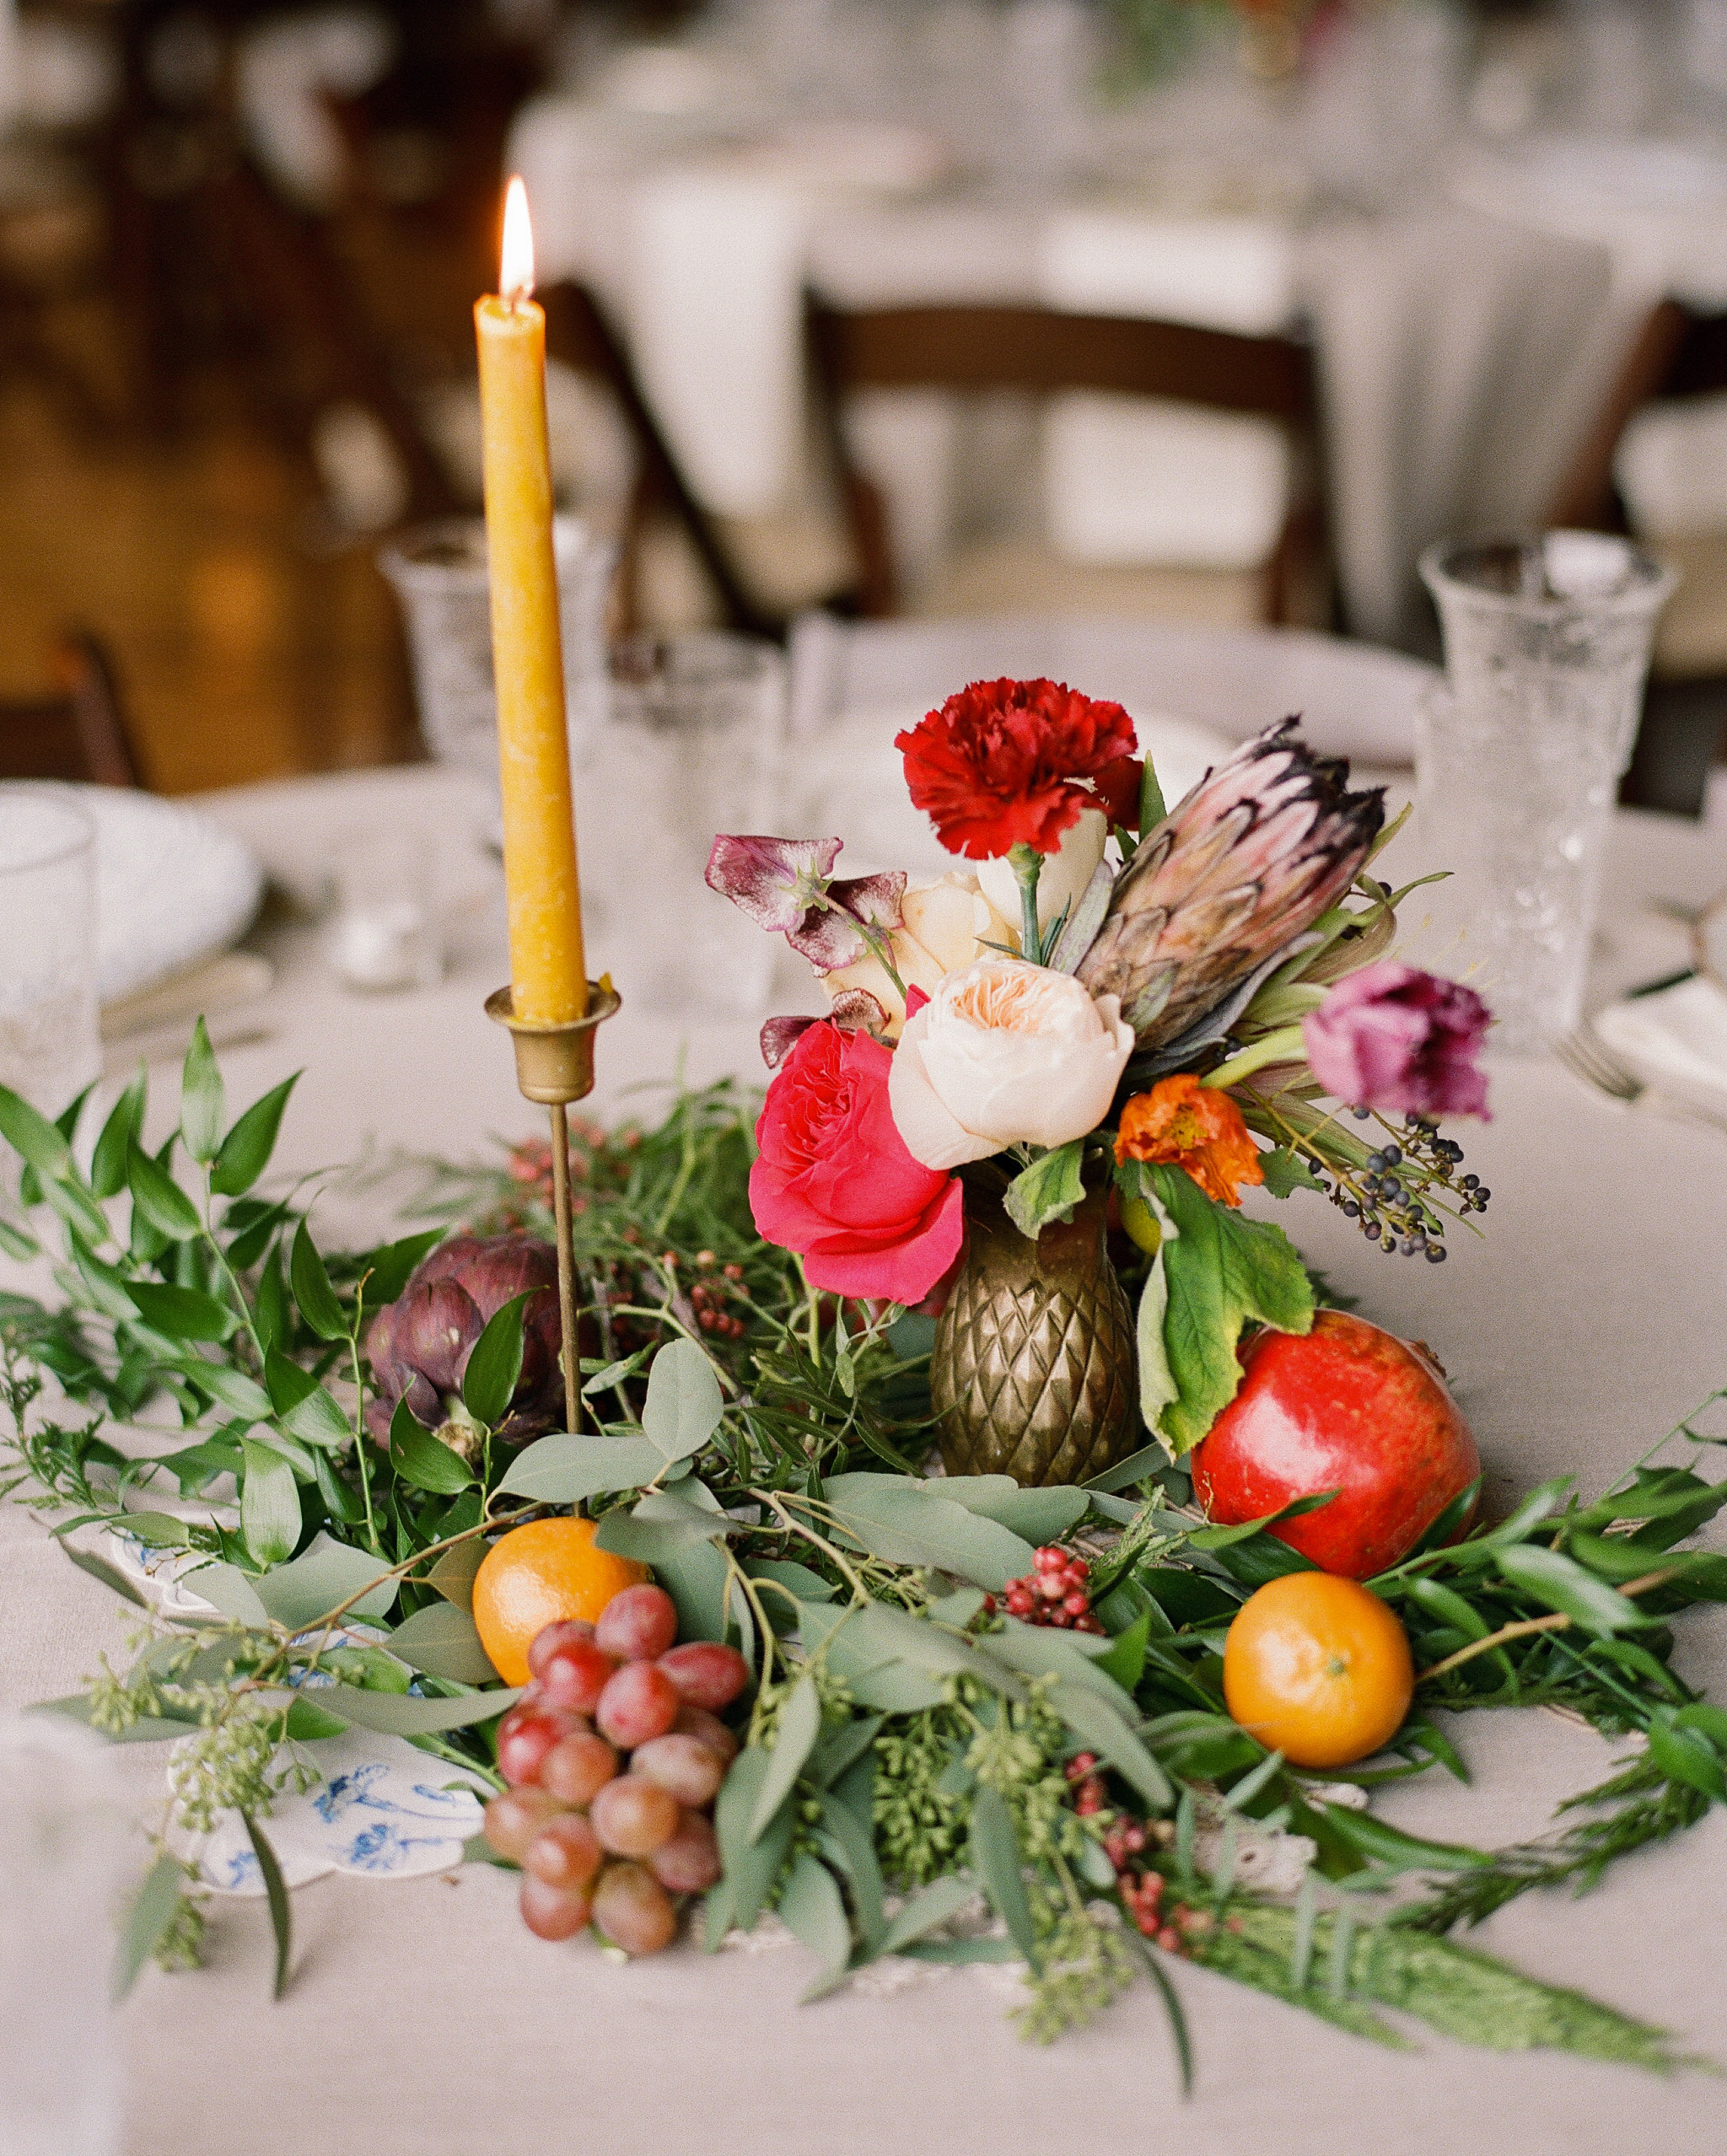 sidney-dane-wedding-centerpiece-289-s112109-0815.jpg